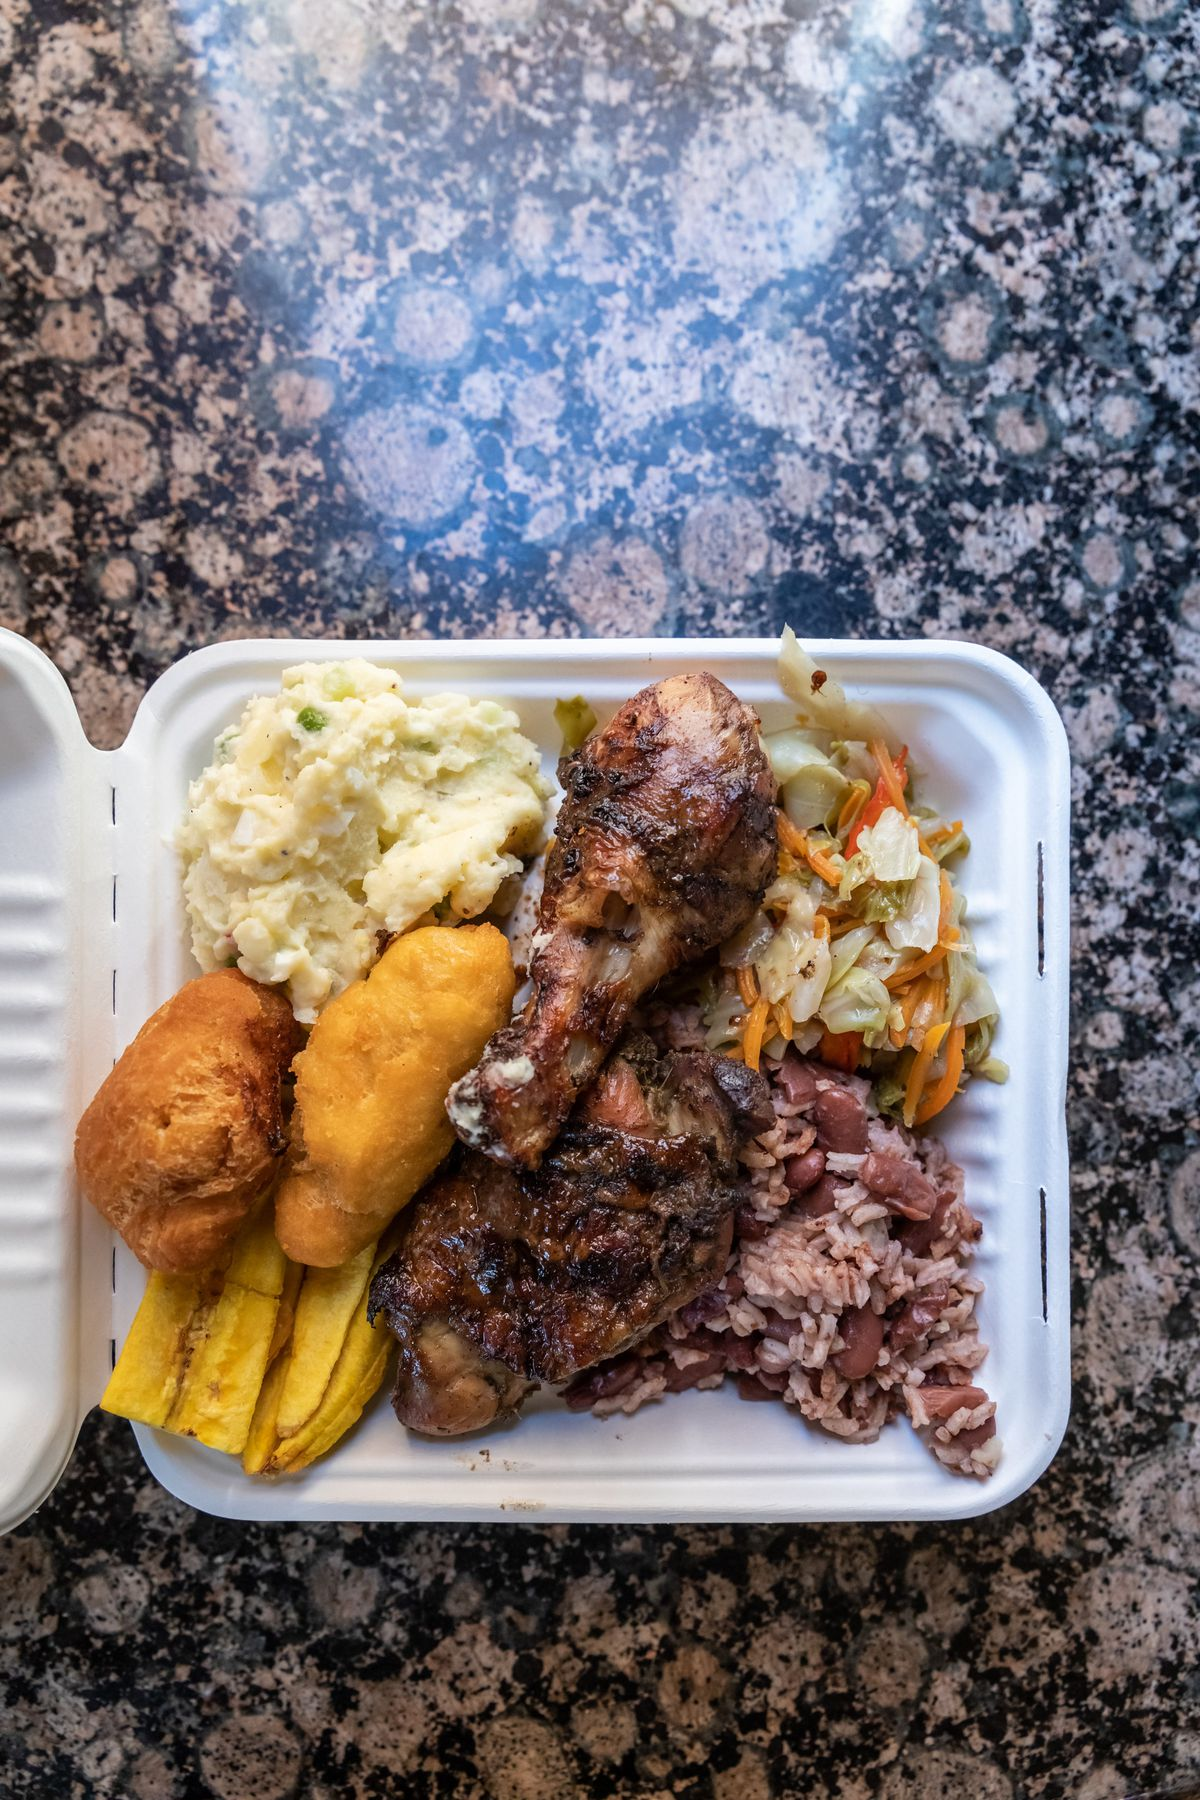 Plate of jerk chicken, red beans, and rice, and more at Jerky Jerk in a paper takeout tray.